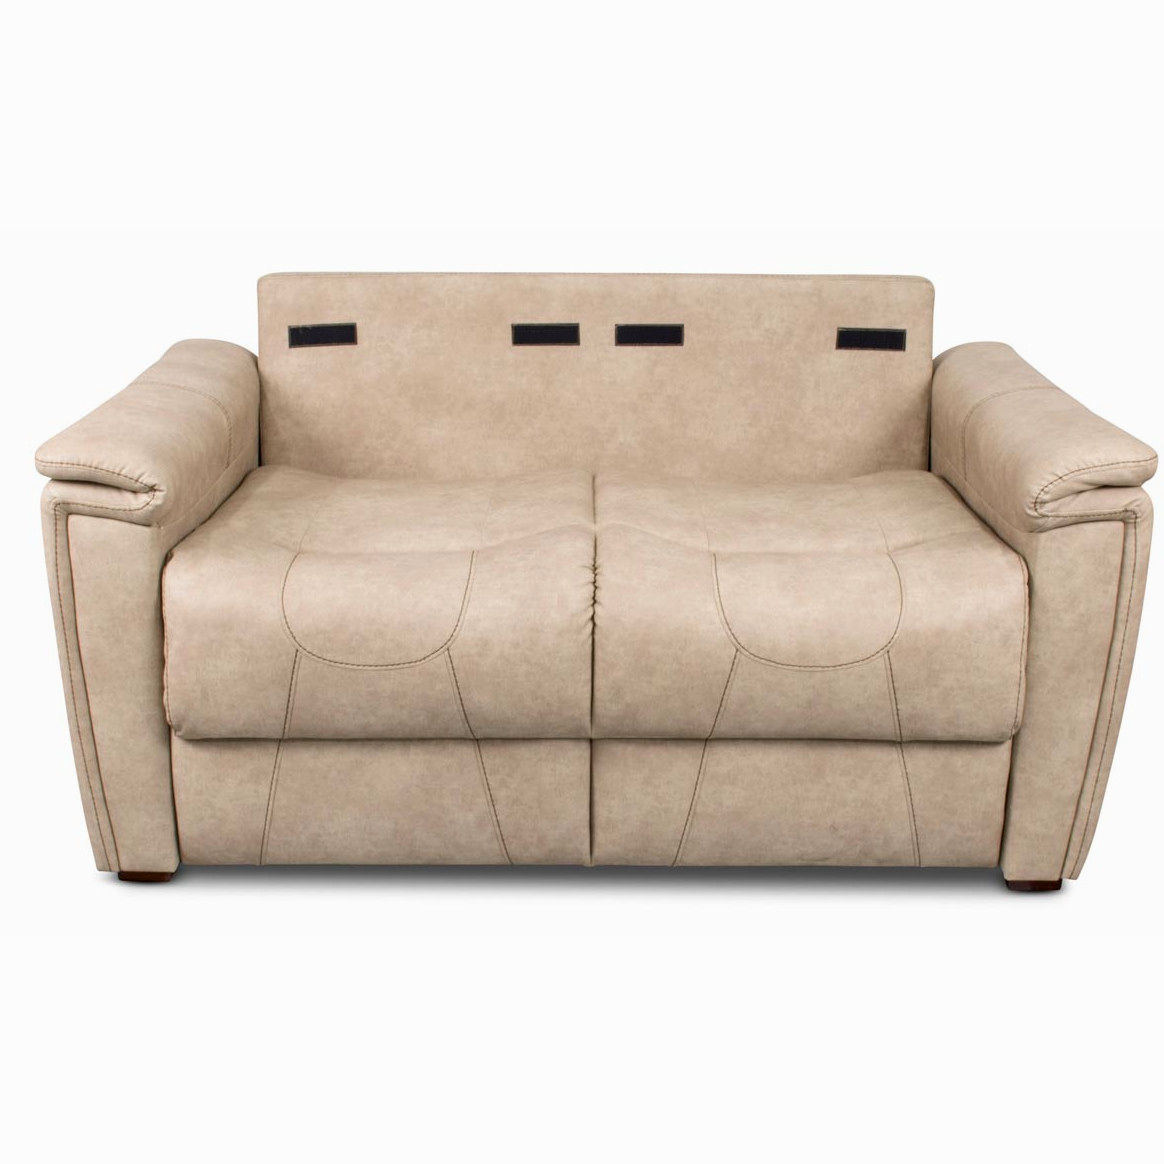 top tri fold sofa inspiration-Fascinating Tri Fold sofa Décor